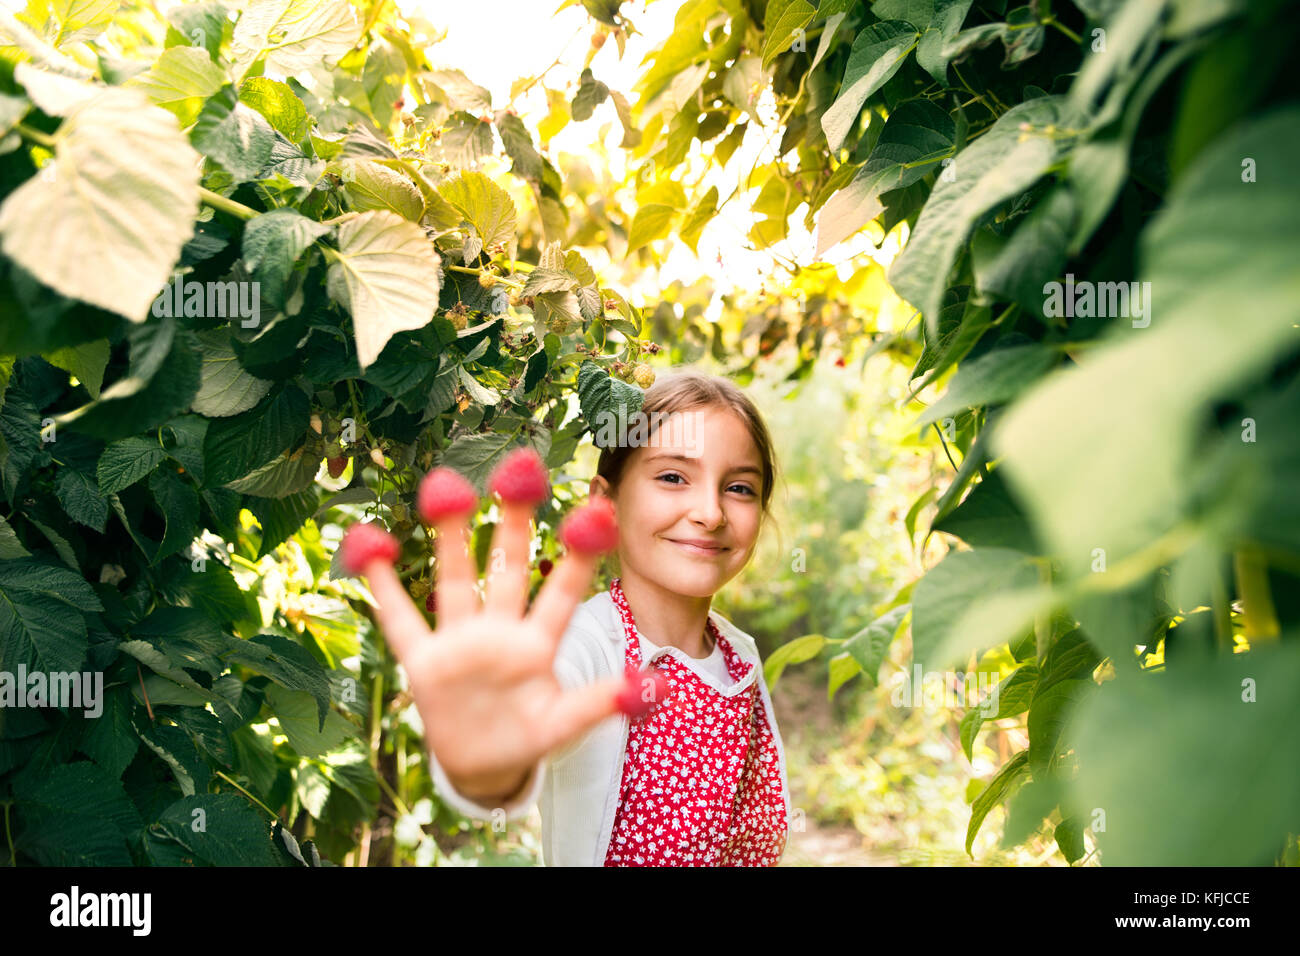 Small girl gardening in the backyard garden. - Stock Image